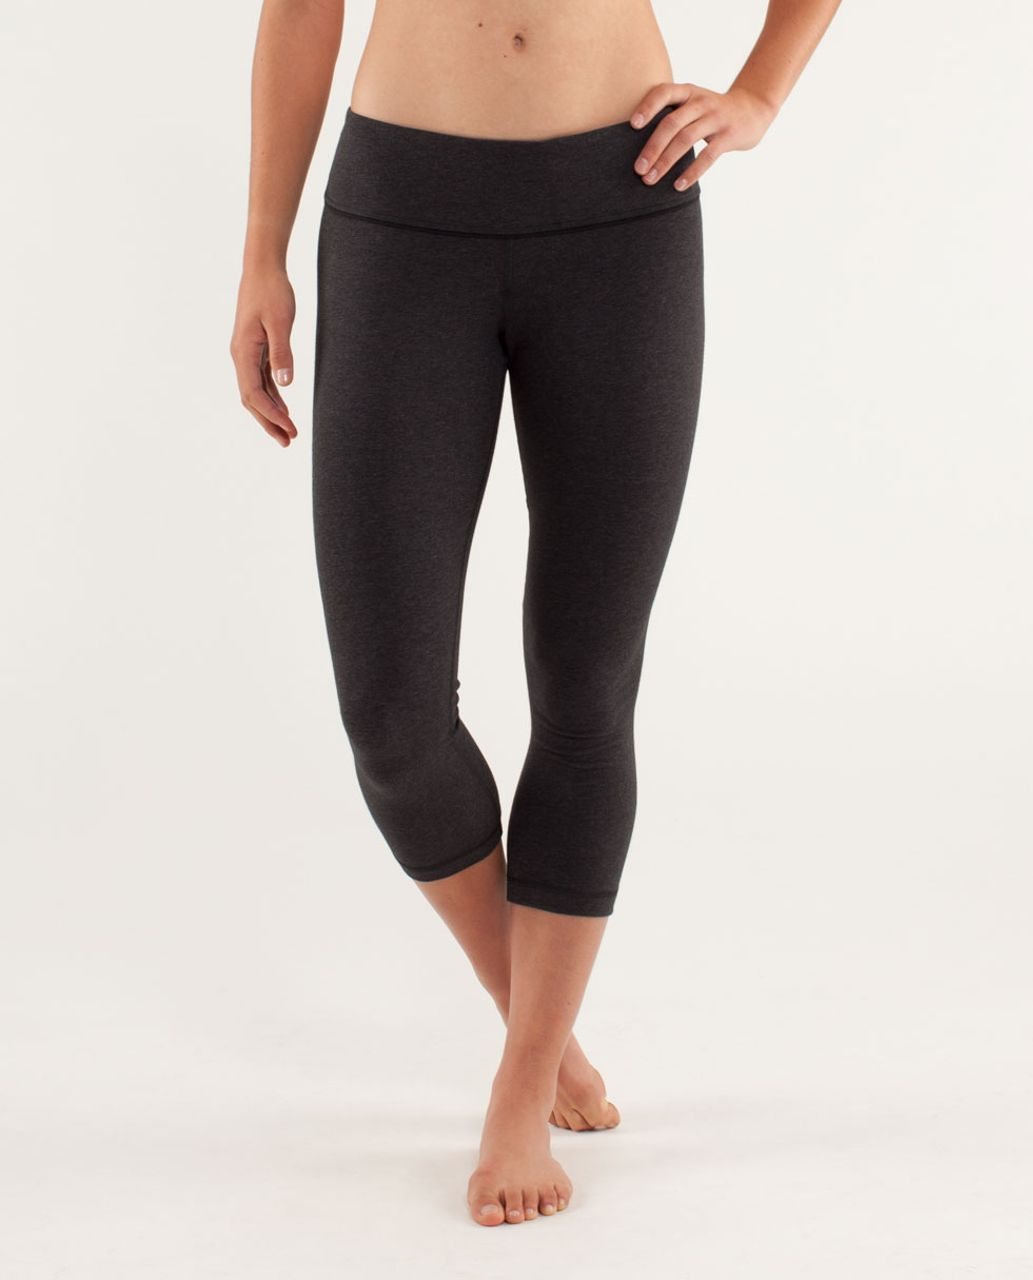 Lululemon Wunder Under Crop - Heathered Black / Black / Micro Macro Black Heathered Black